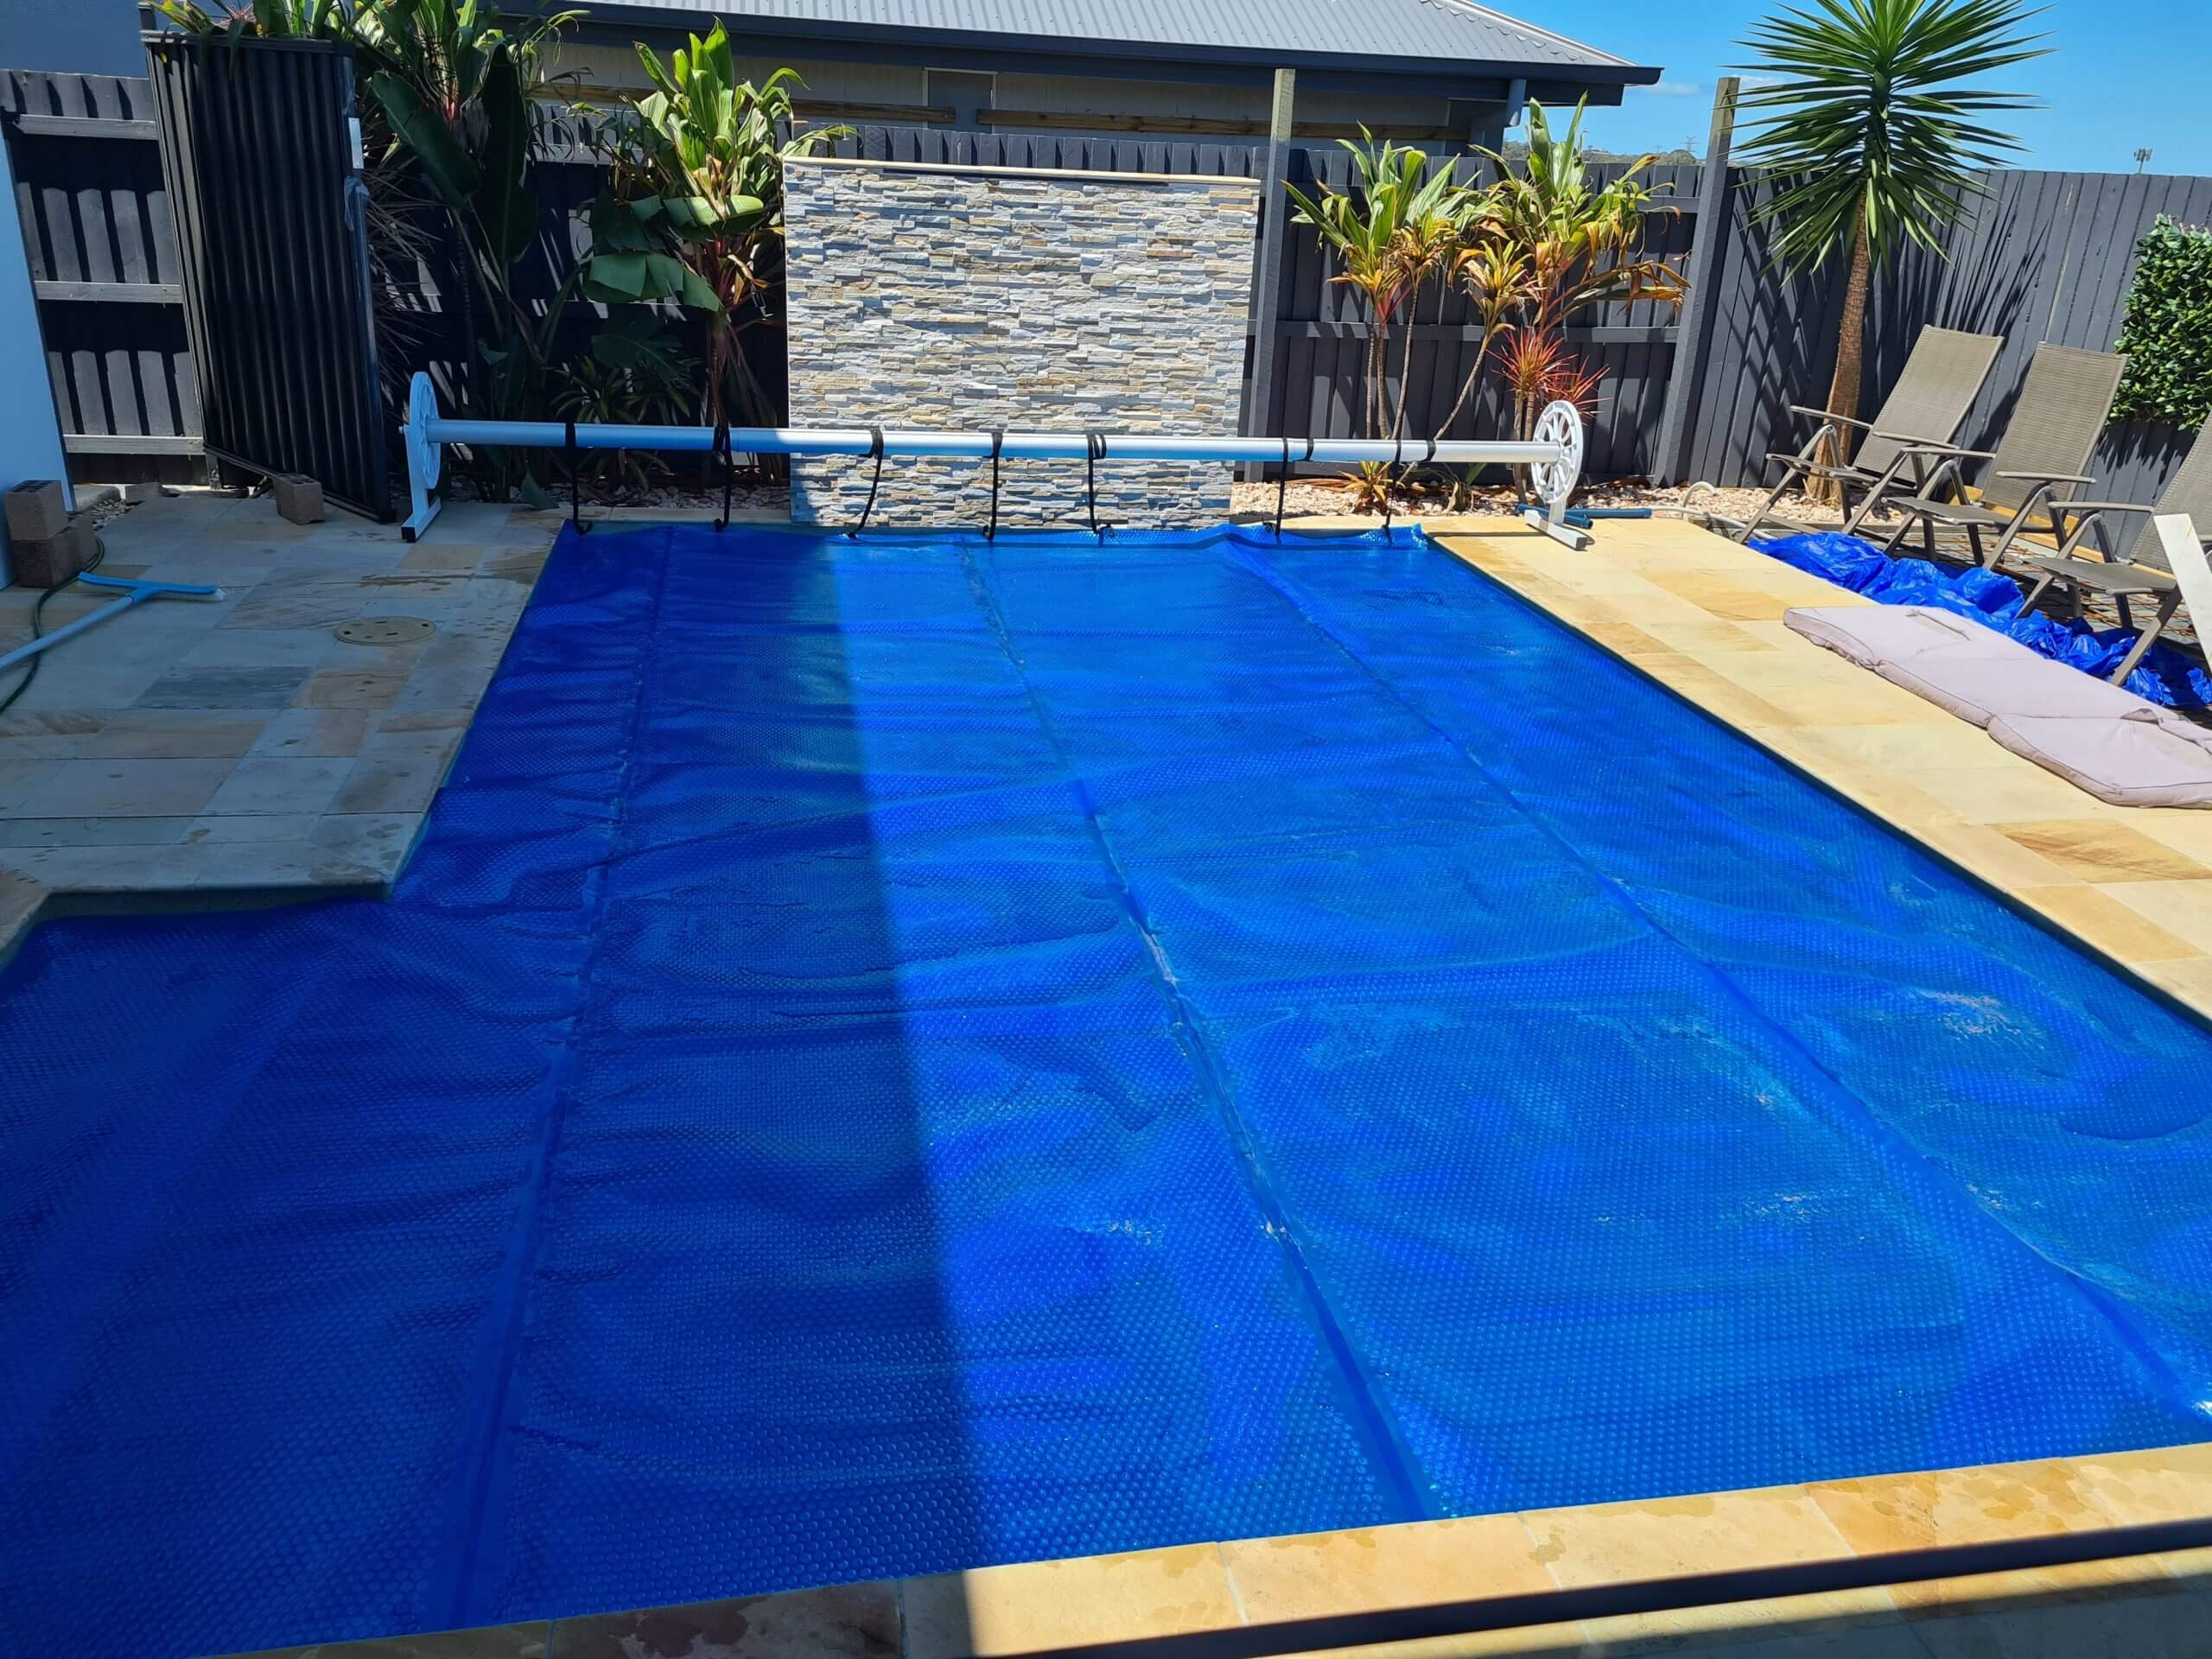 Pool with Blanket